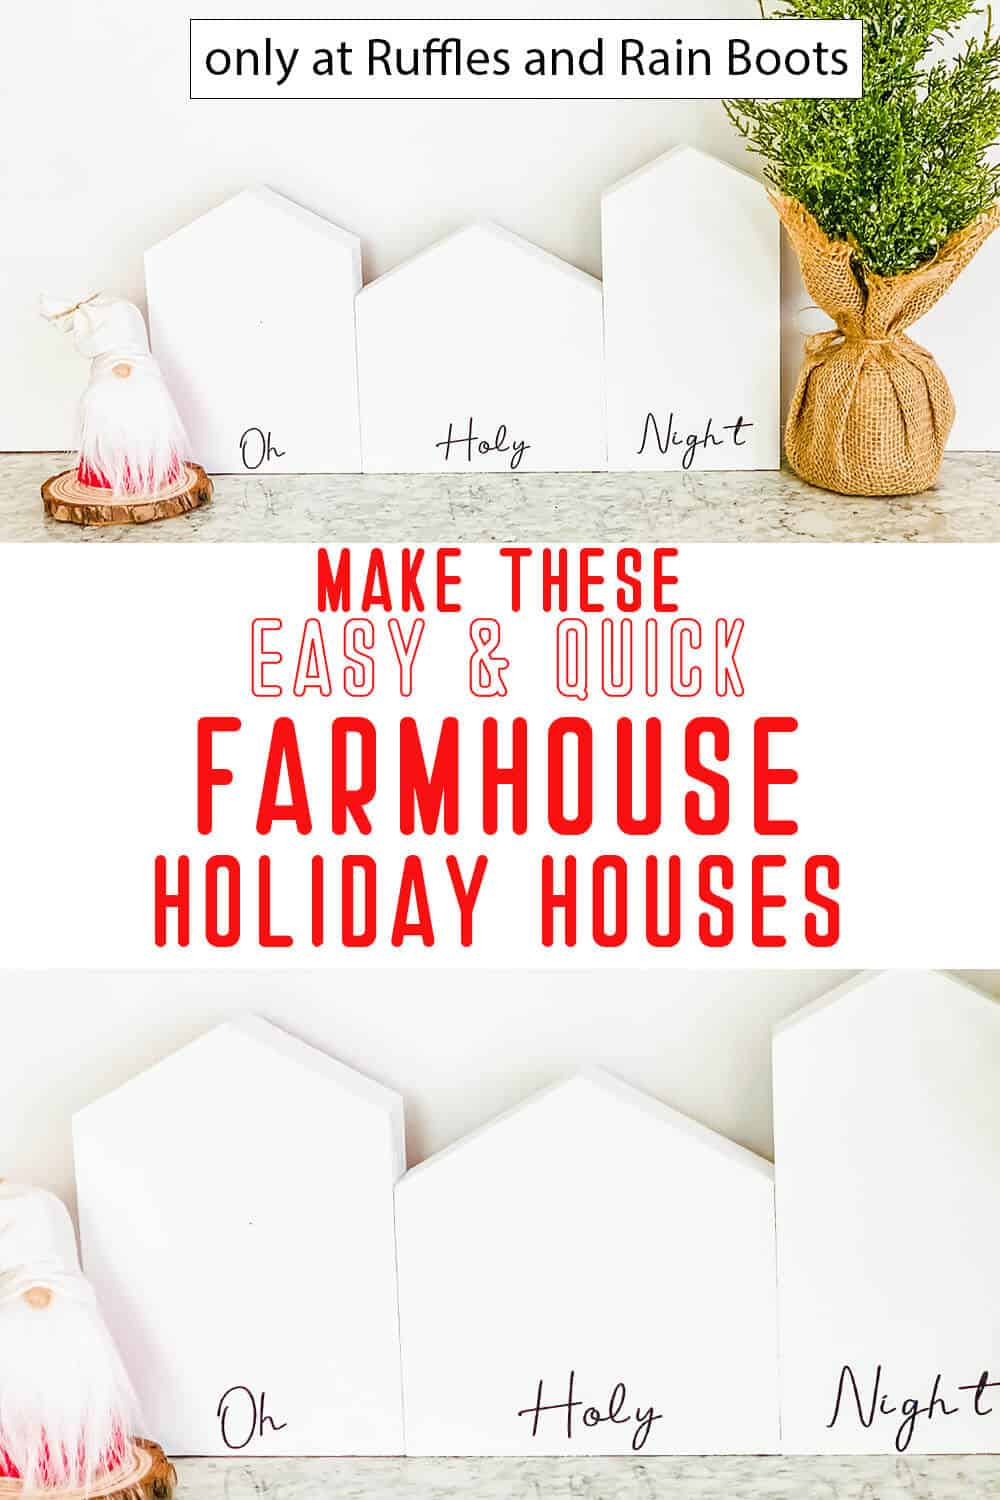 photo collage of christmas cricut craft wood houses with text which reads make these easy and quick farmhouse holiday houses